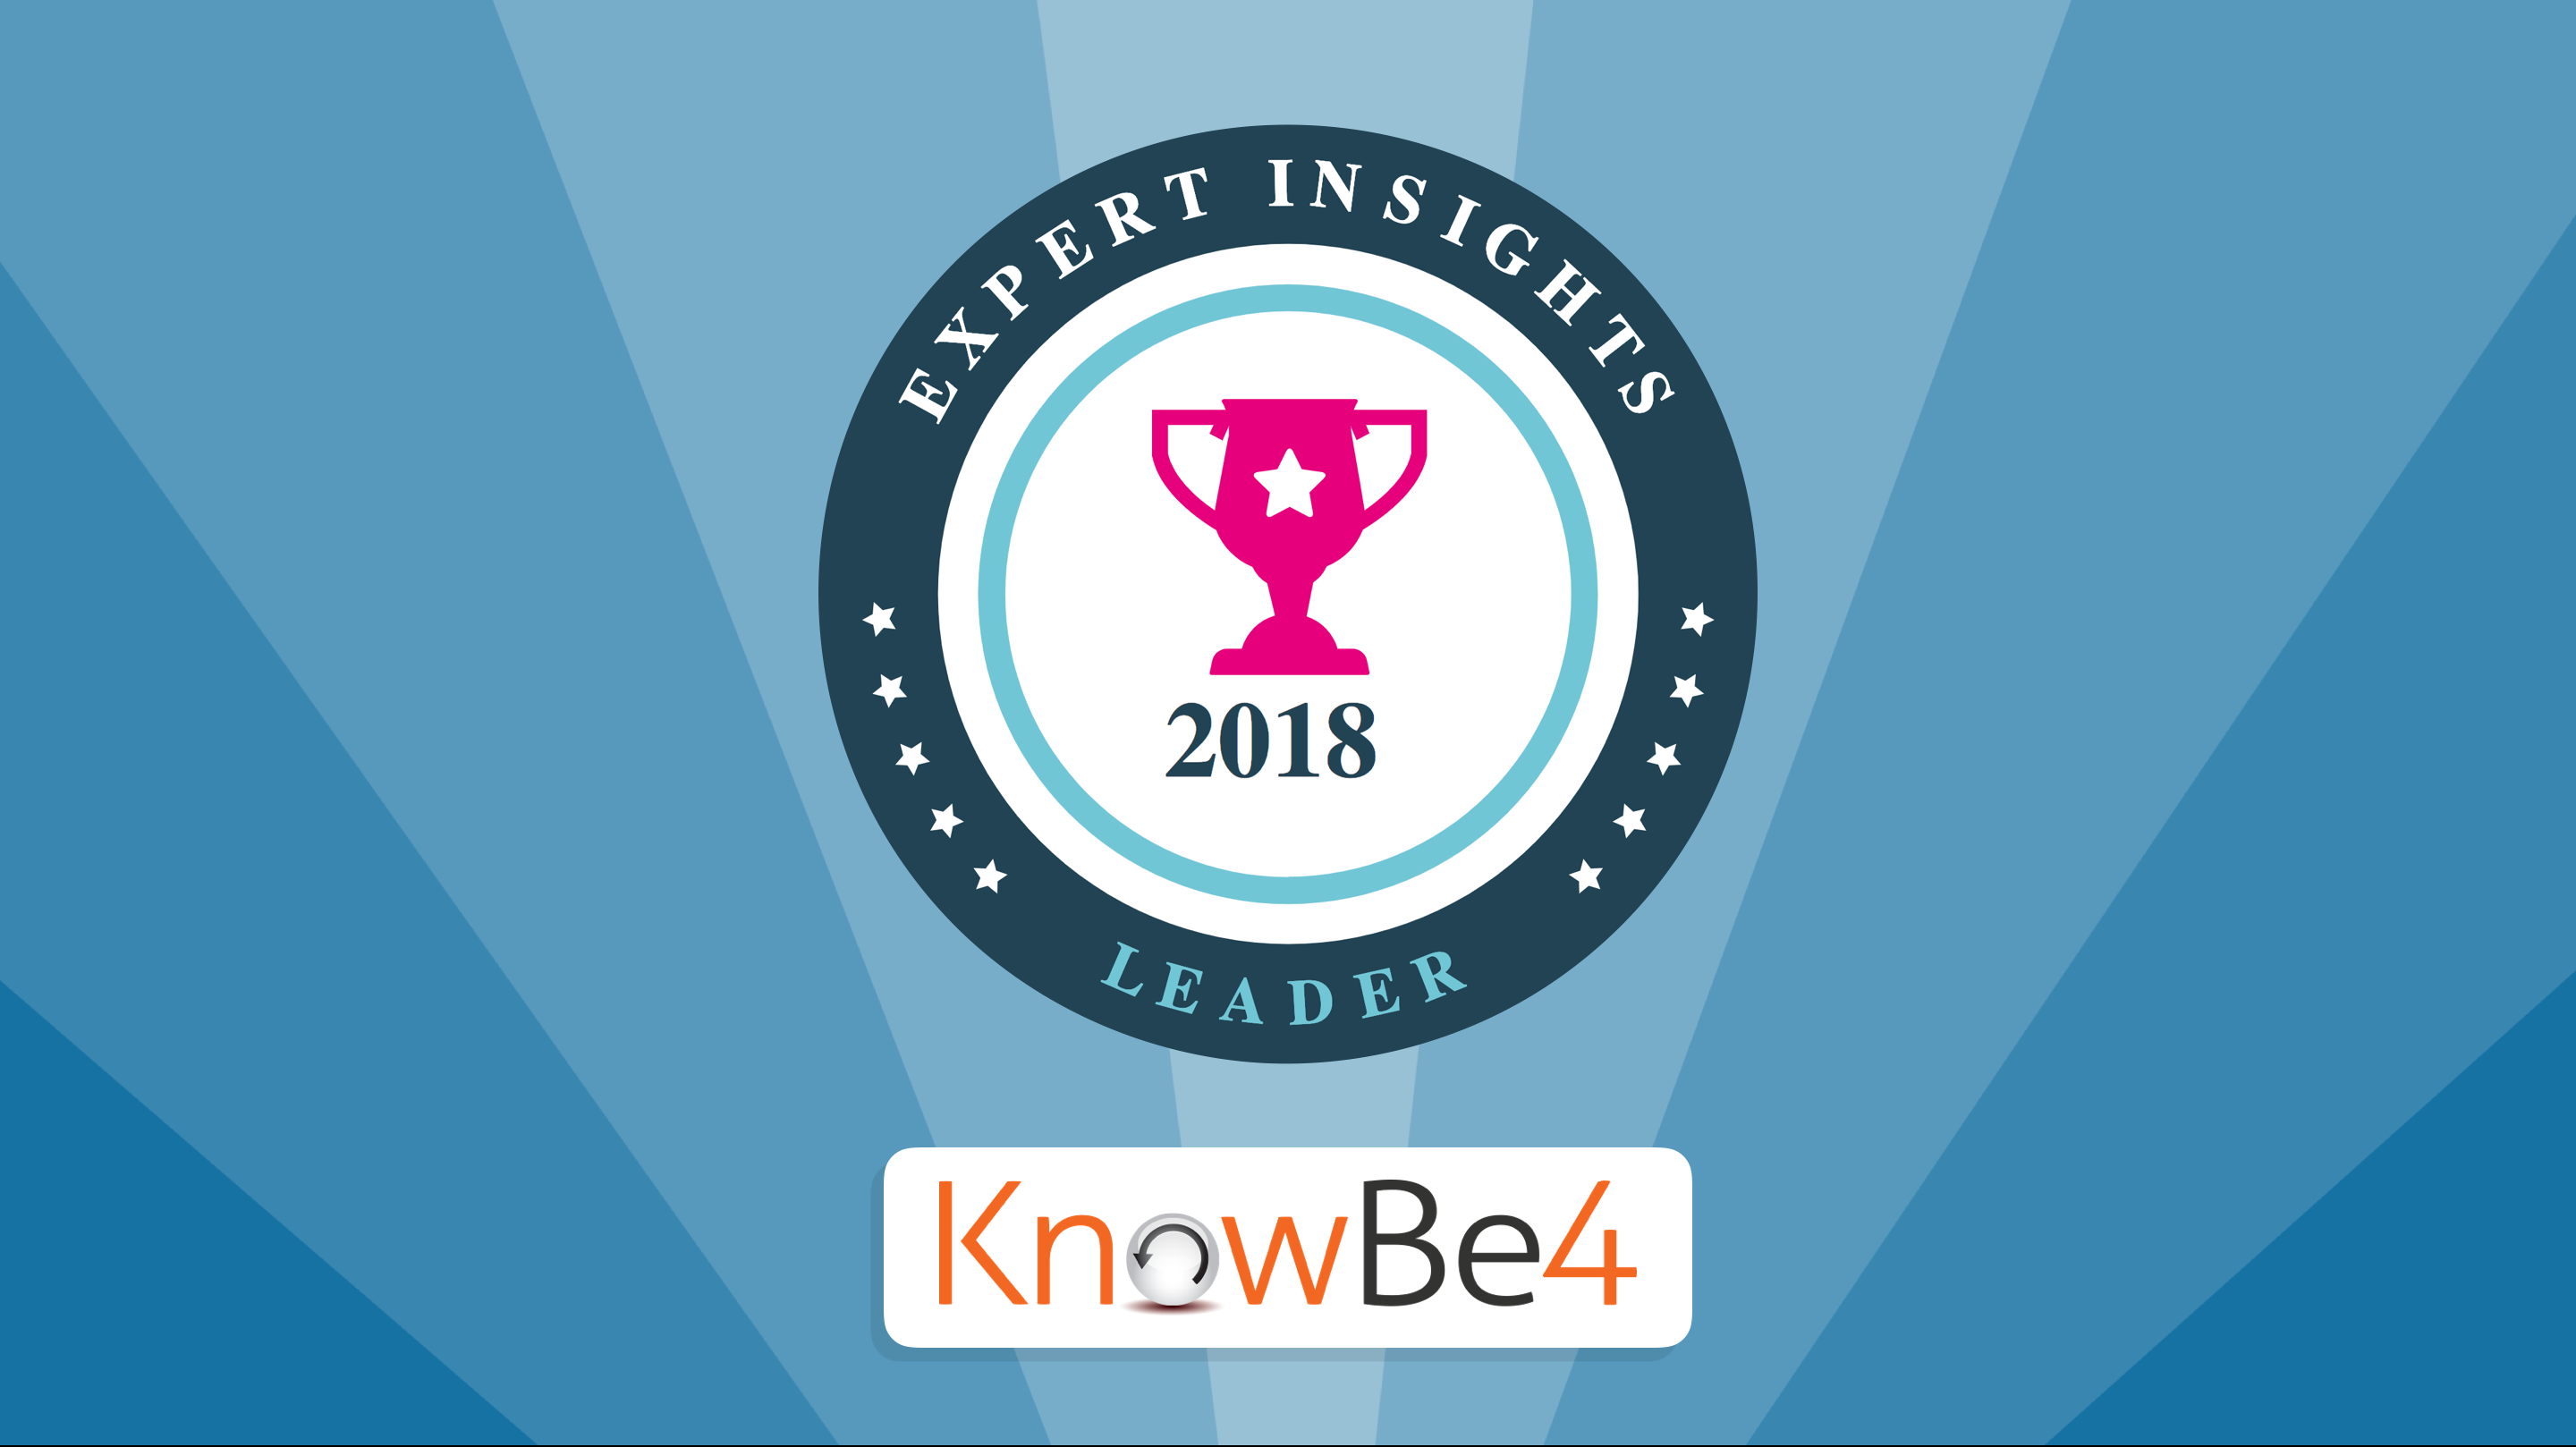 Expert Insights Recognises KnowBe4 as a '2018 Market Leader